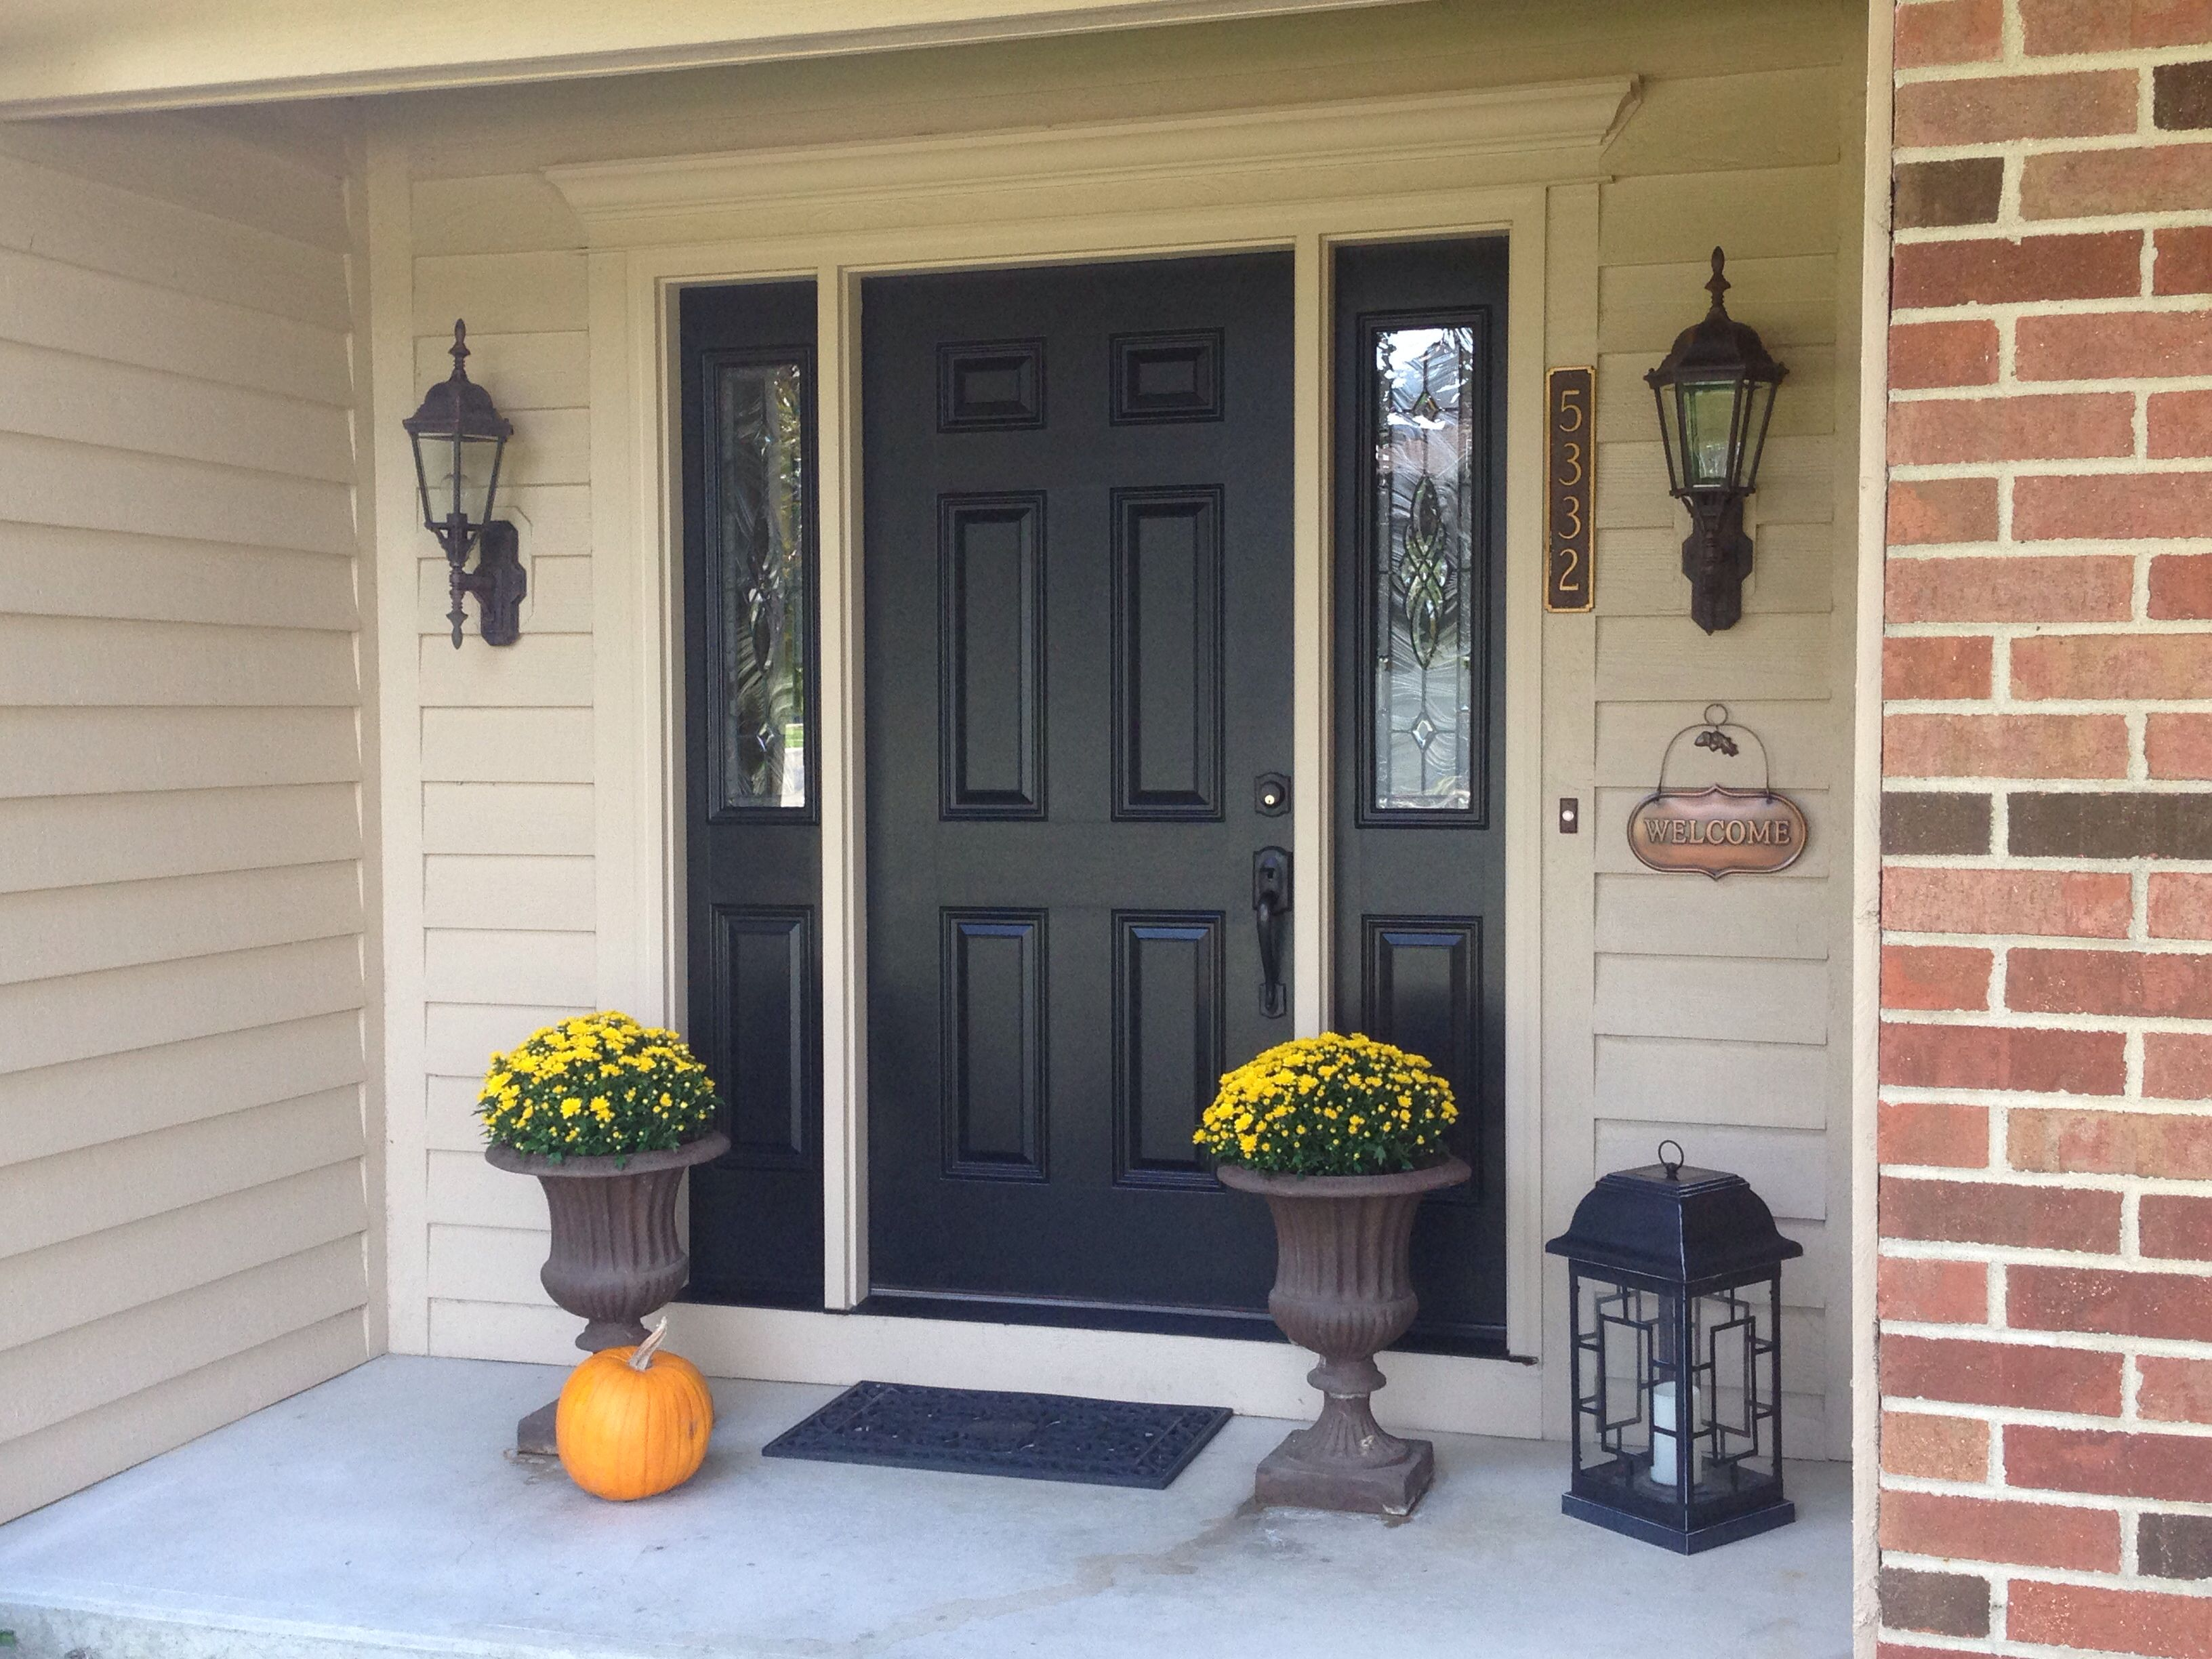 my front door painted in sherwin williams tricorn black the siding is sherwin williams nomadic. Black Bedroom Furniture Sets. Home Design Ideas